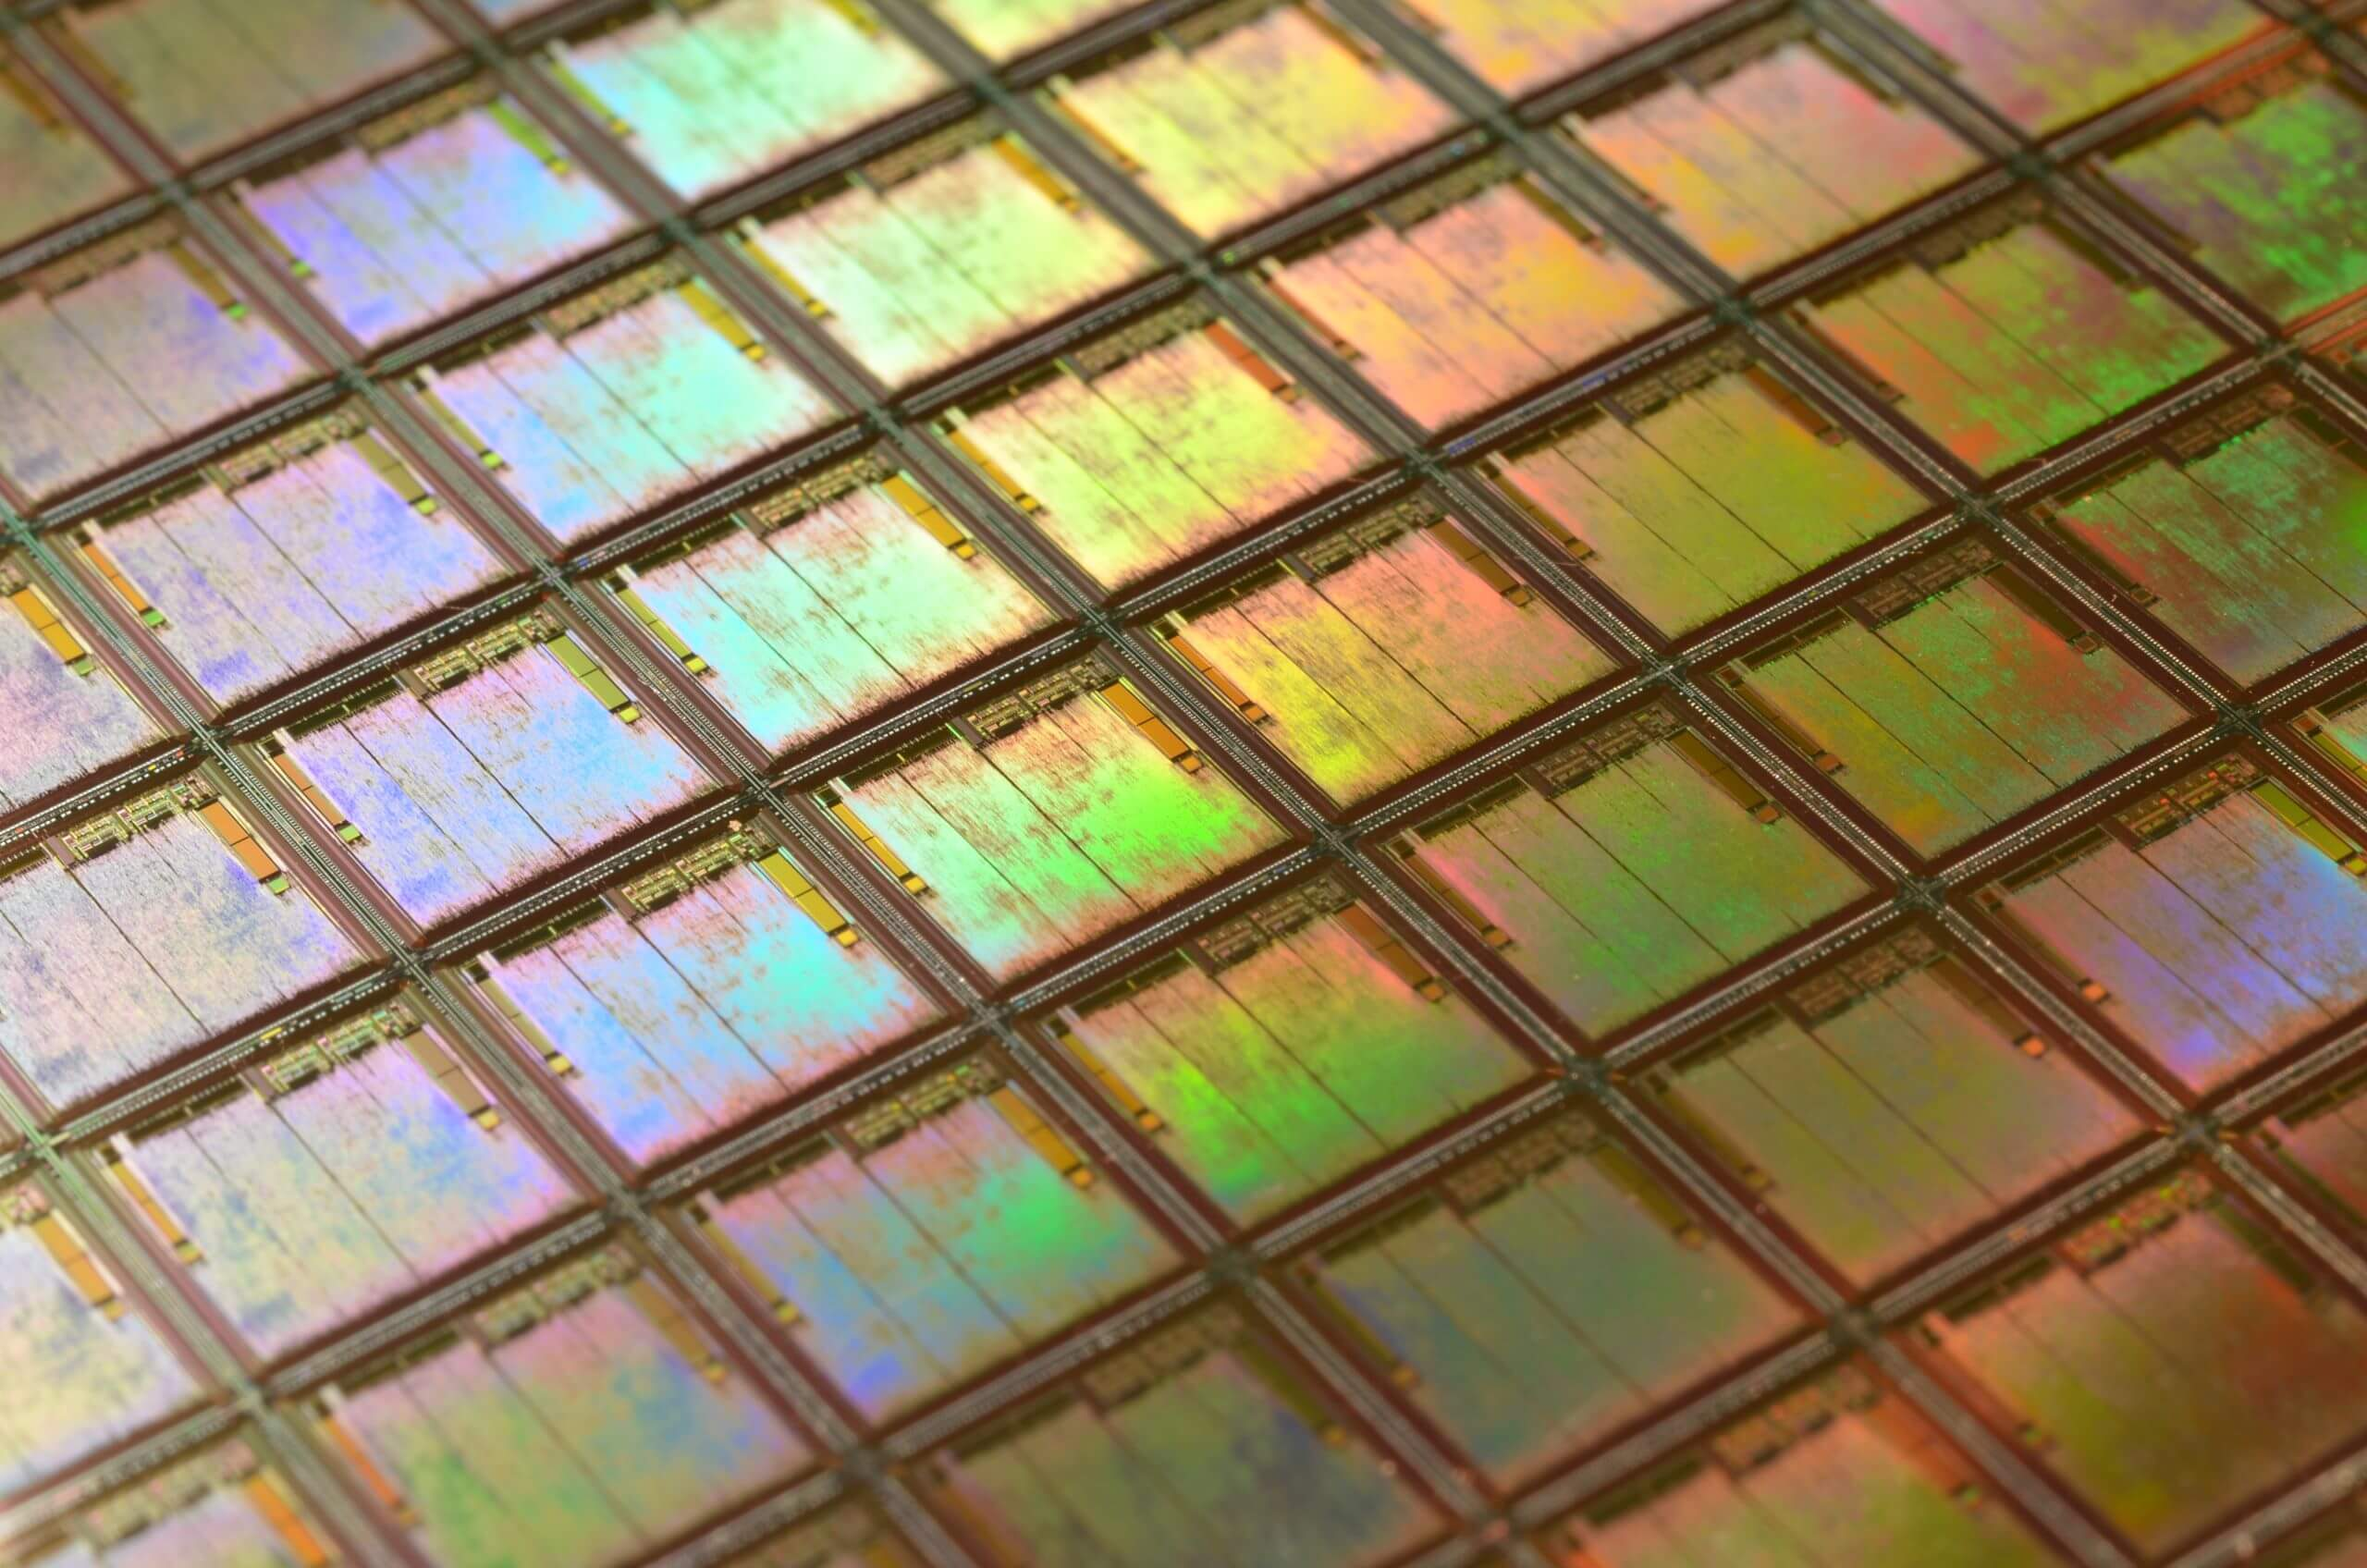 Existing processors could get a boost from swapping silicon for carbon nanotubes